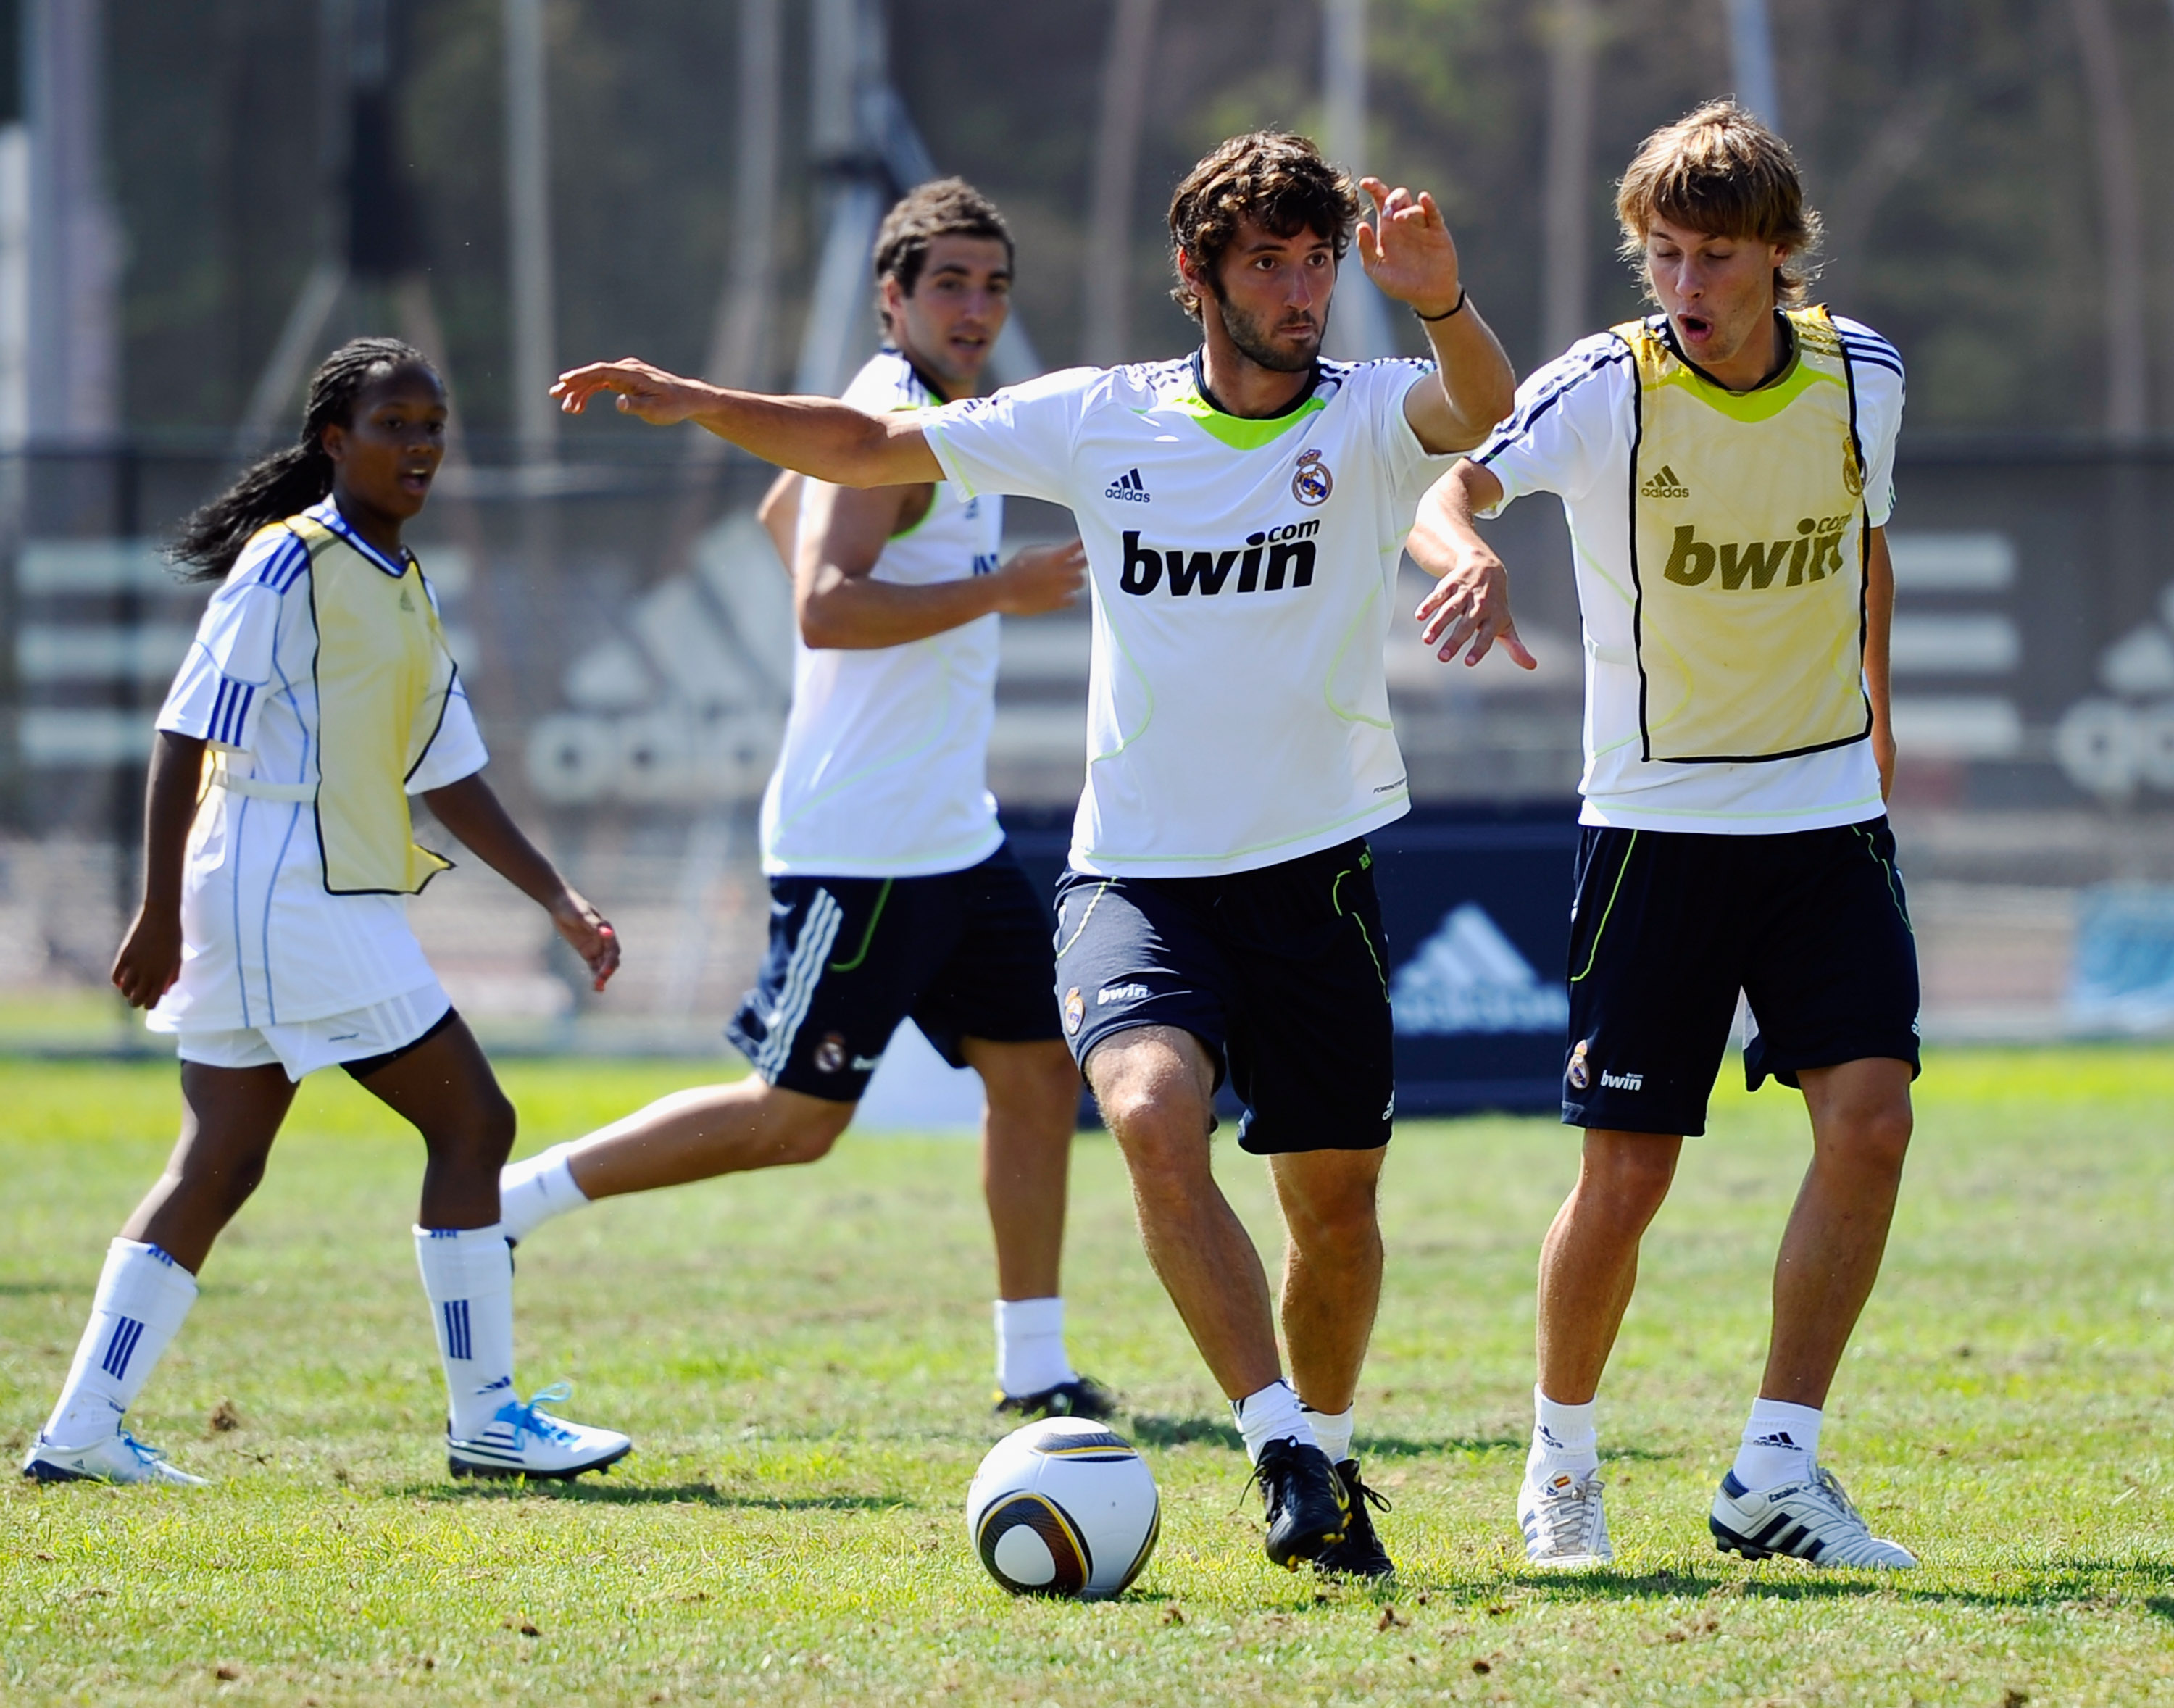 LOS ANGELES, CA - AUGUST 05:  Esteban Granero #24 (C) and Sergio Canales #27 of Real Madrid and  local youth soccer players participate in the Adidas training on August 5, 2010 in Westwood section of Los Angeles, California.  (Photo by Kevork Djansezian/G